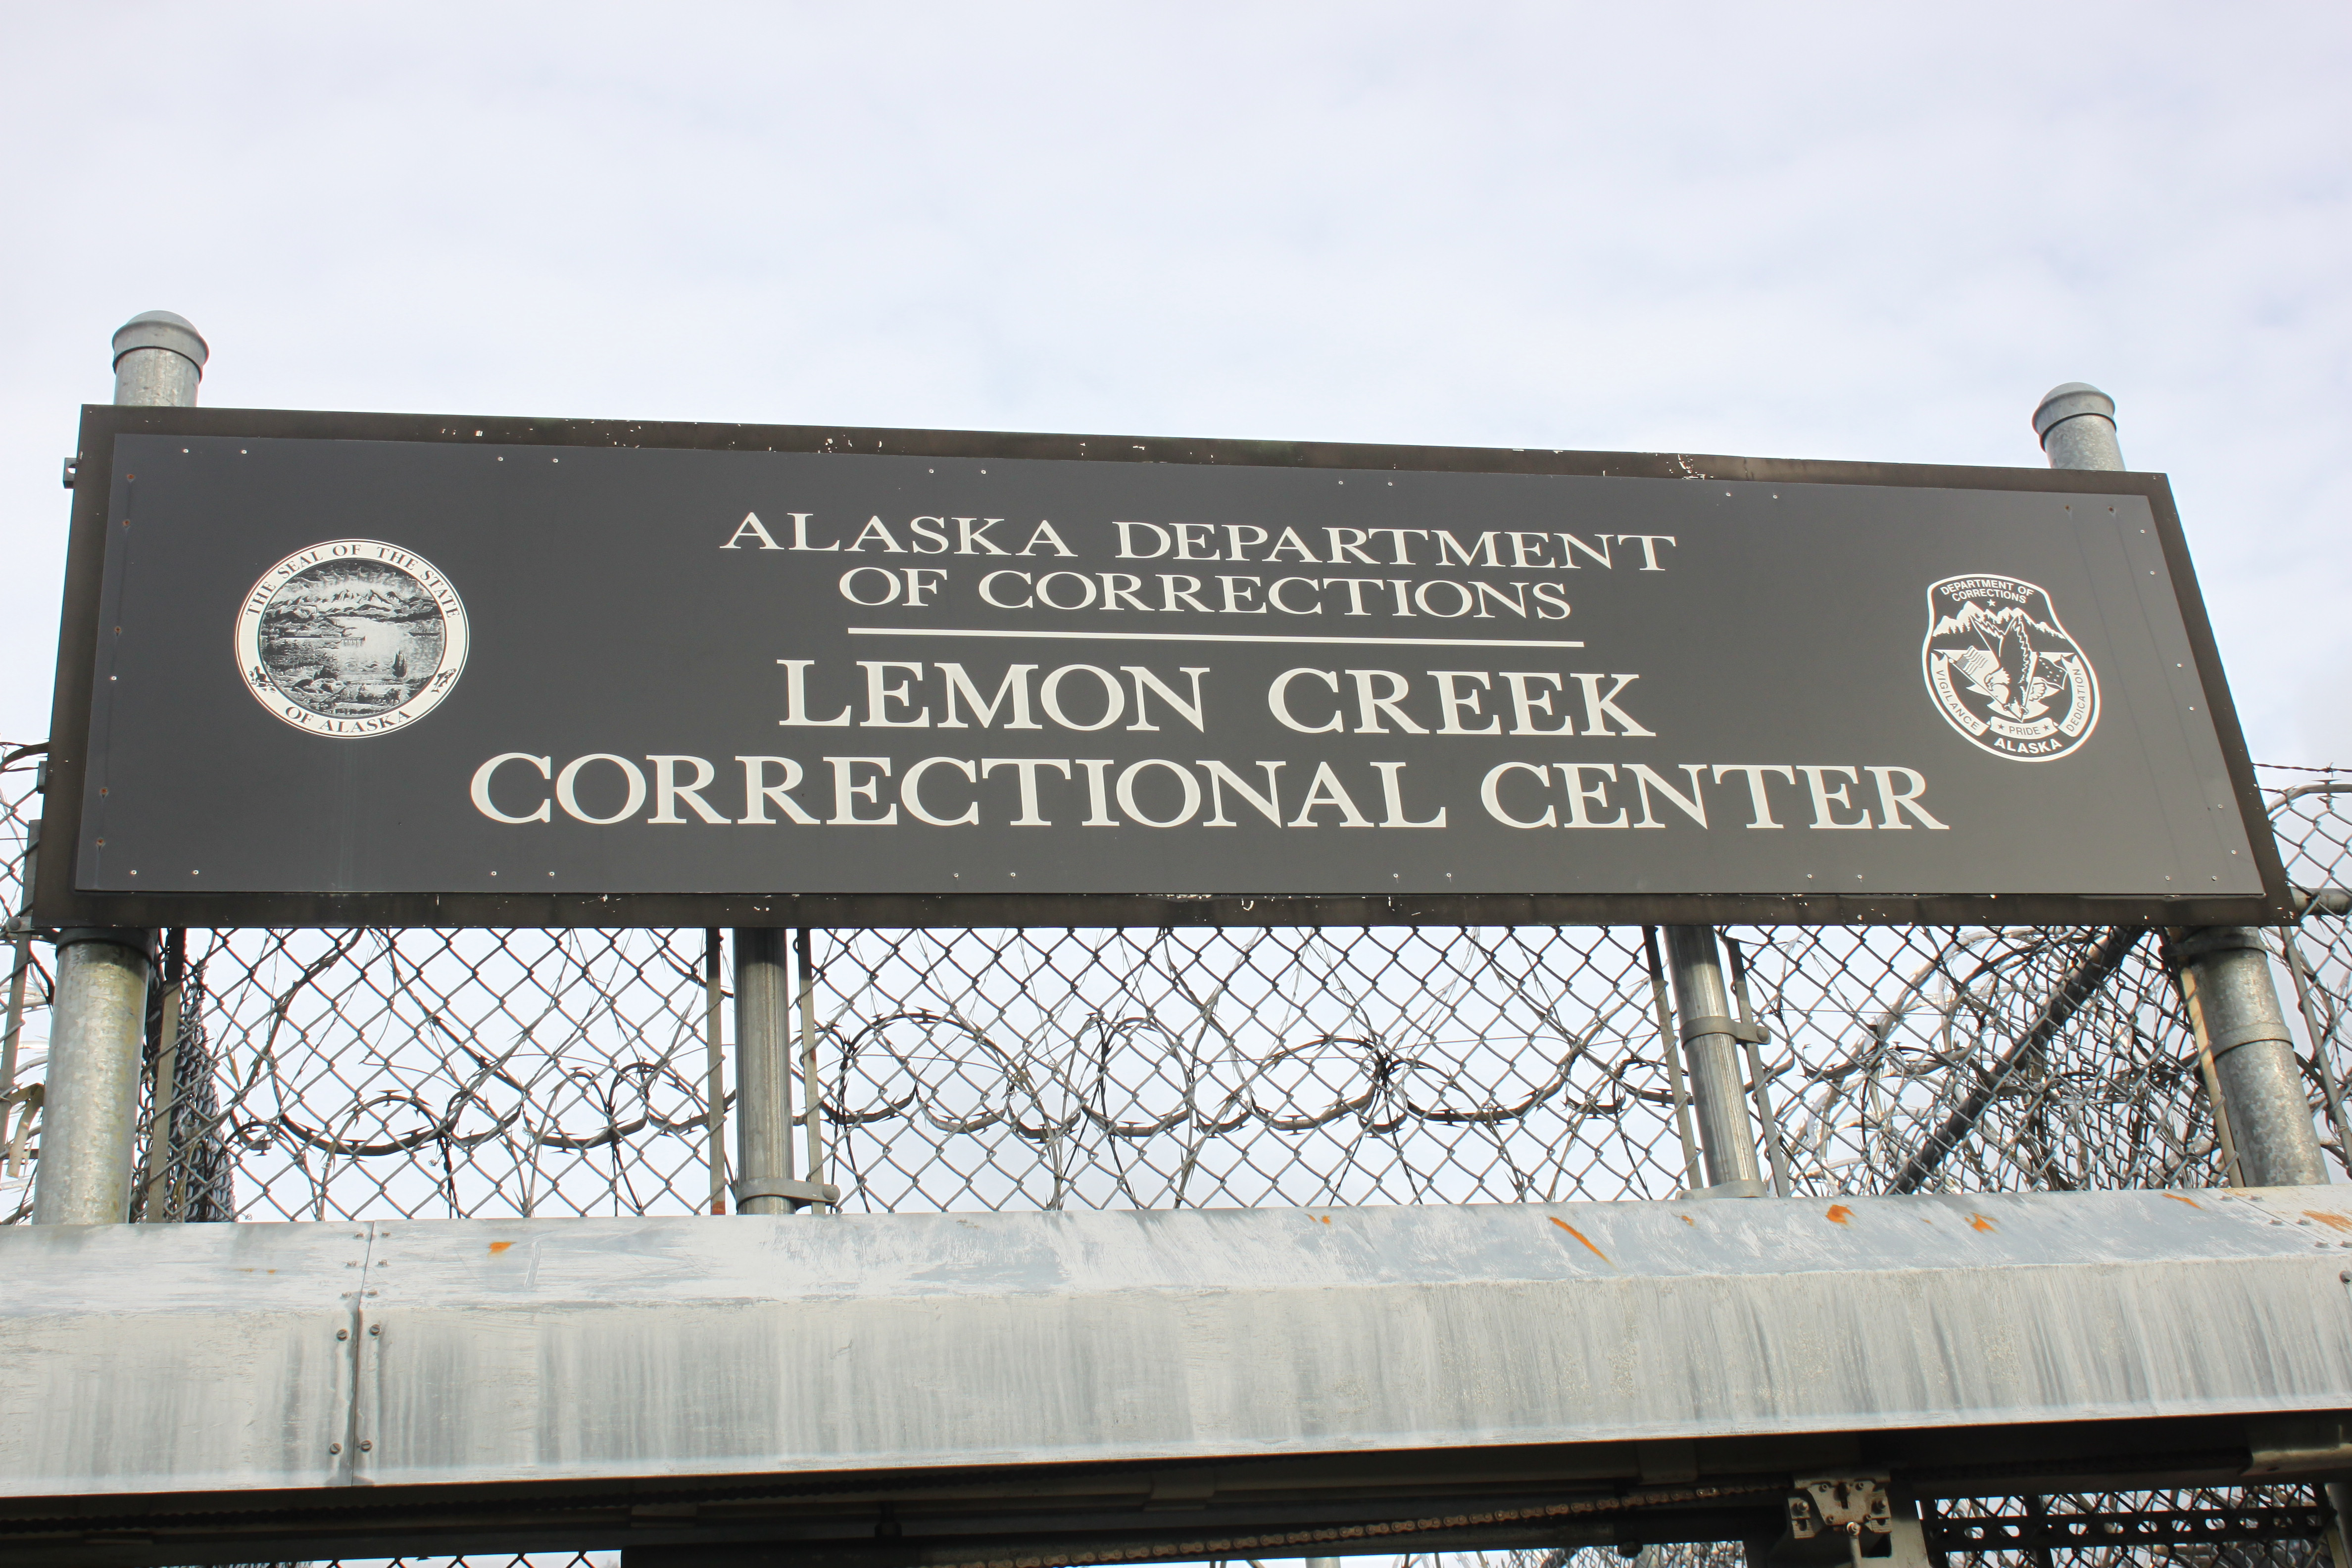 Lemon Creek Correctional Center